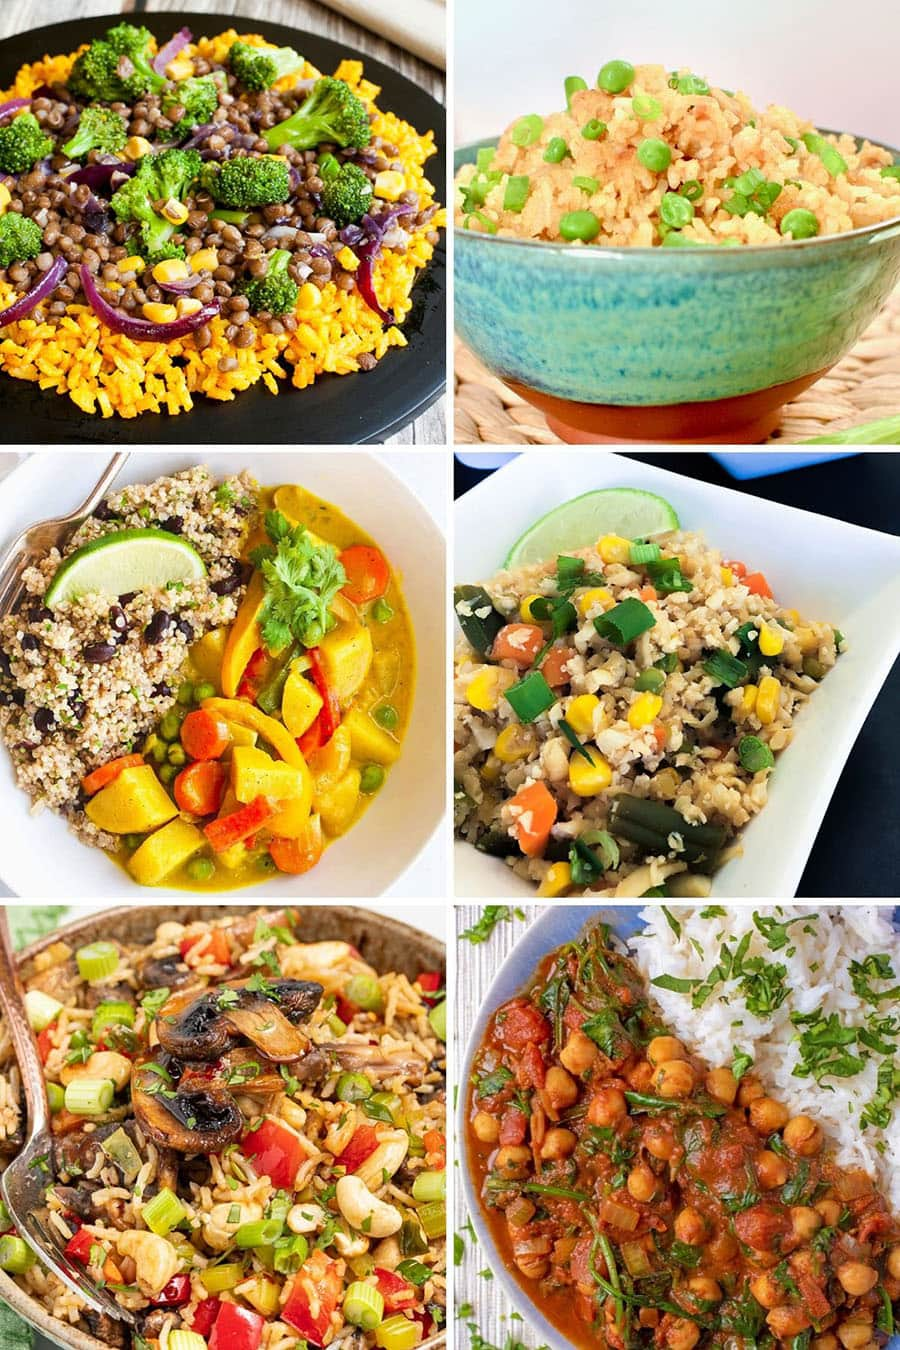 Collage of 6 vegan stir-fry recipes: broccoli, lentil, vegan egg, coconut curry, cauliflower rice, chickpea curry and more